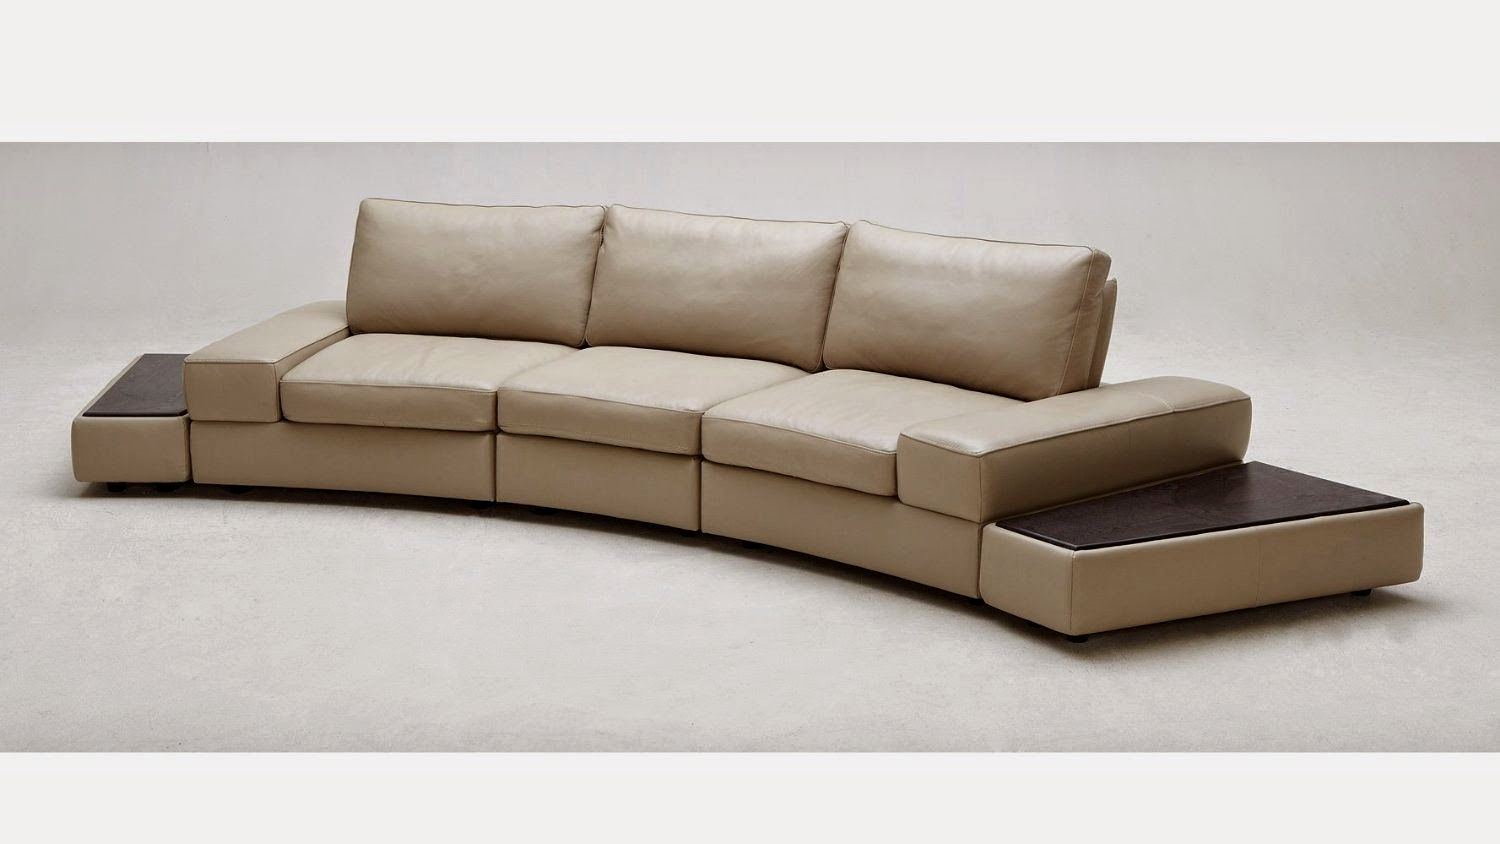 contemporary leather sofas for sale photo-Fascinating Leather sofas for Sale Collection